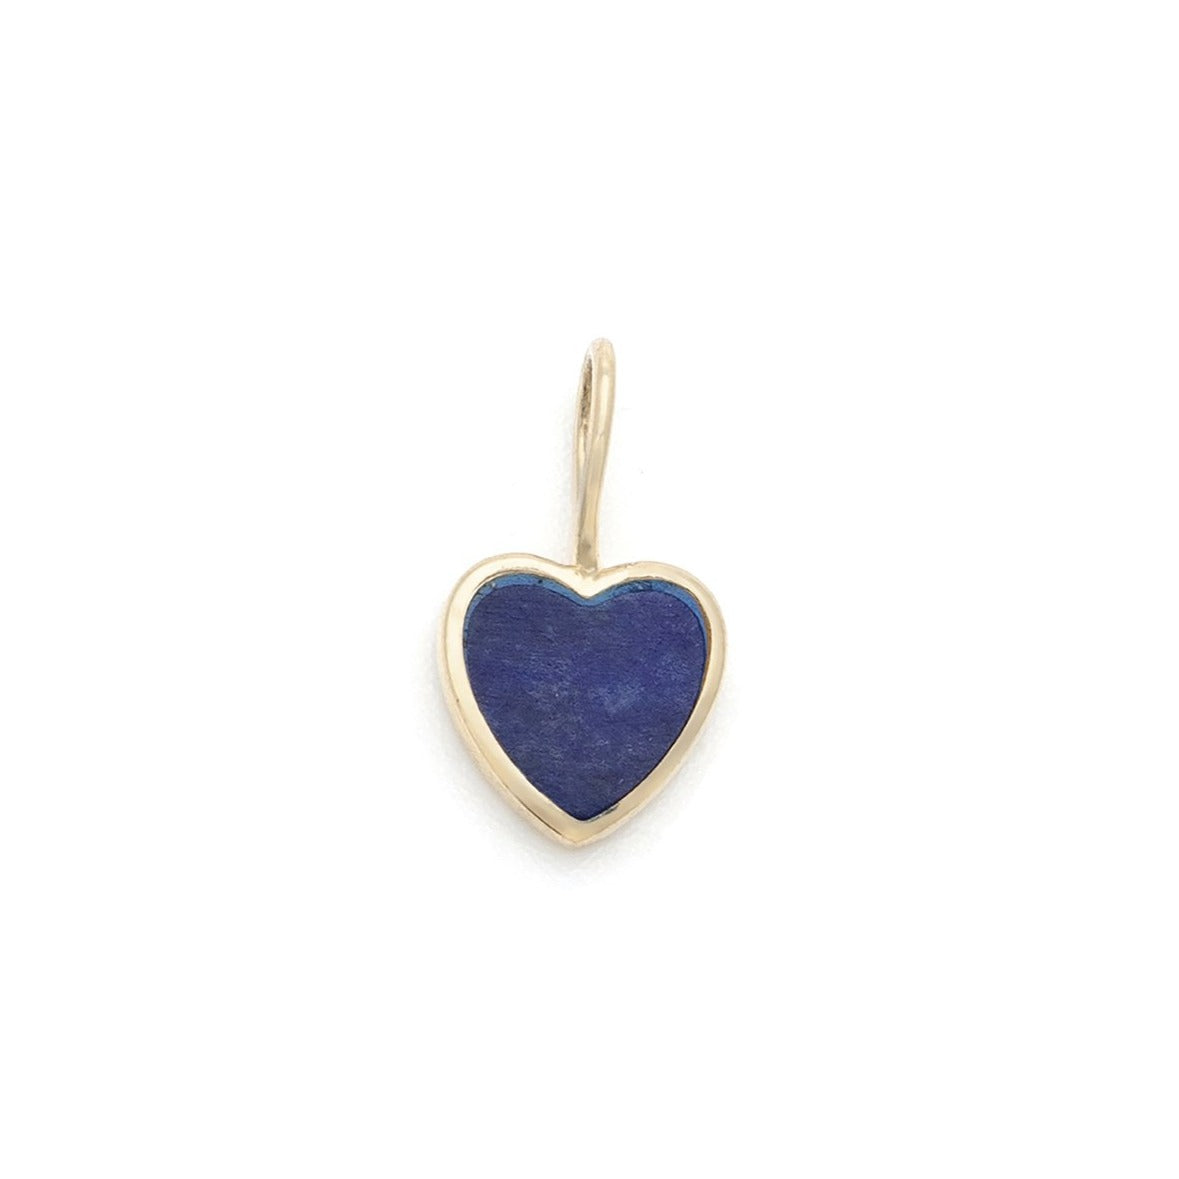 Lapis Heart Charm - 10k Solid Gold